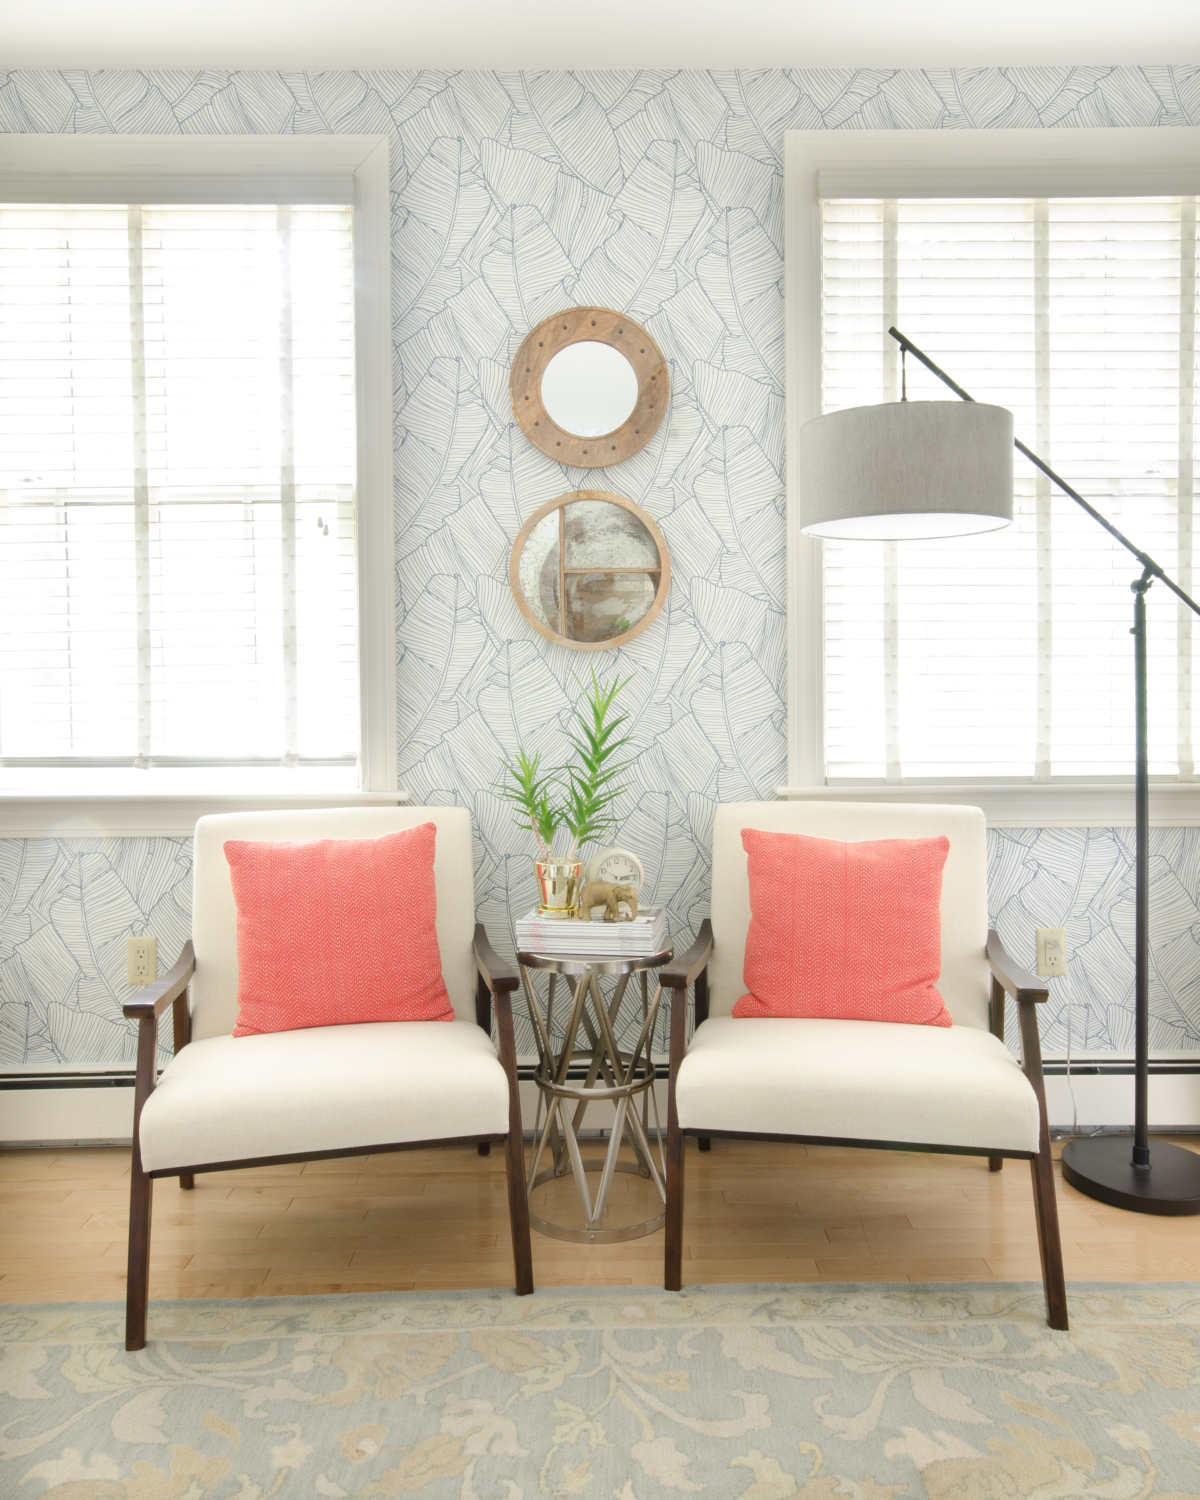 Amazing guest room makeover, you won't even believe the before and after!! Colorful, classic guest room with teal, coral, blush, kelly green, and white. Budget-conscious and lots of amazing DIY projects!